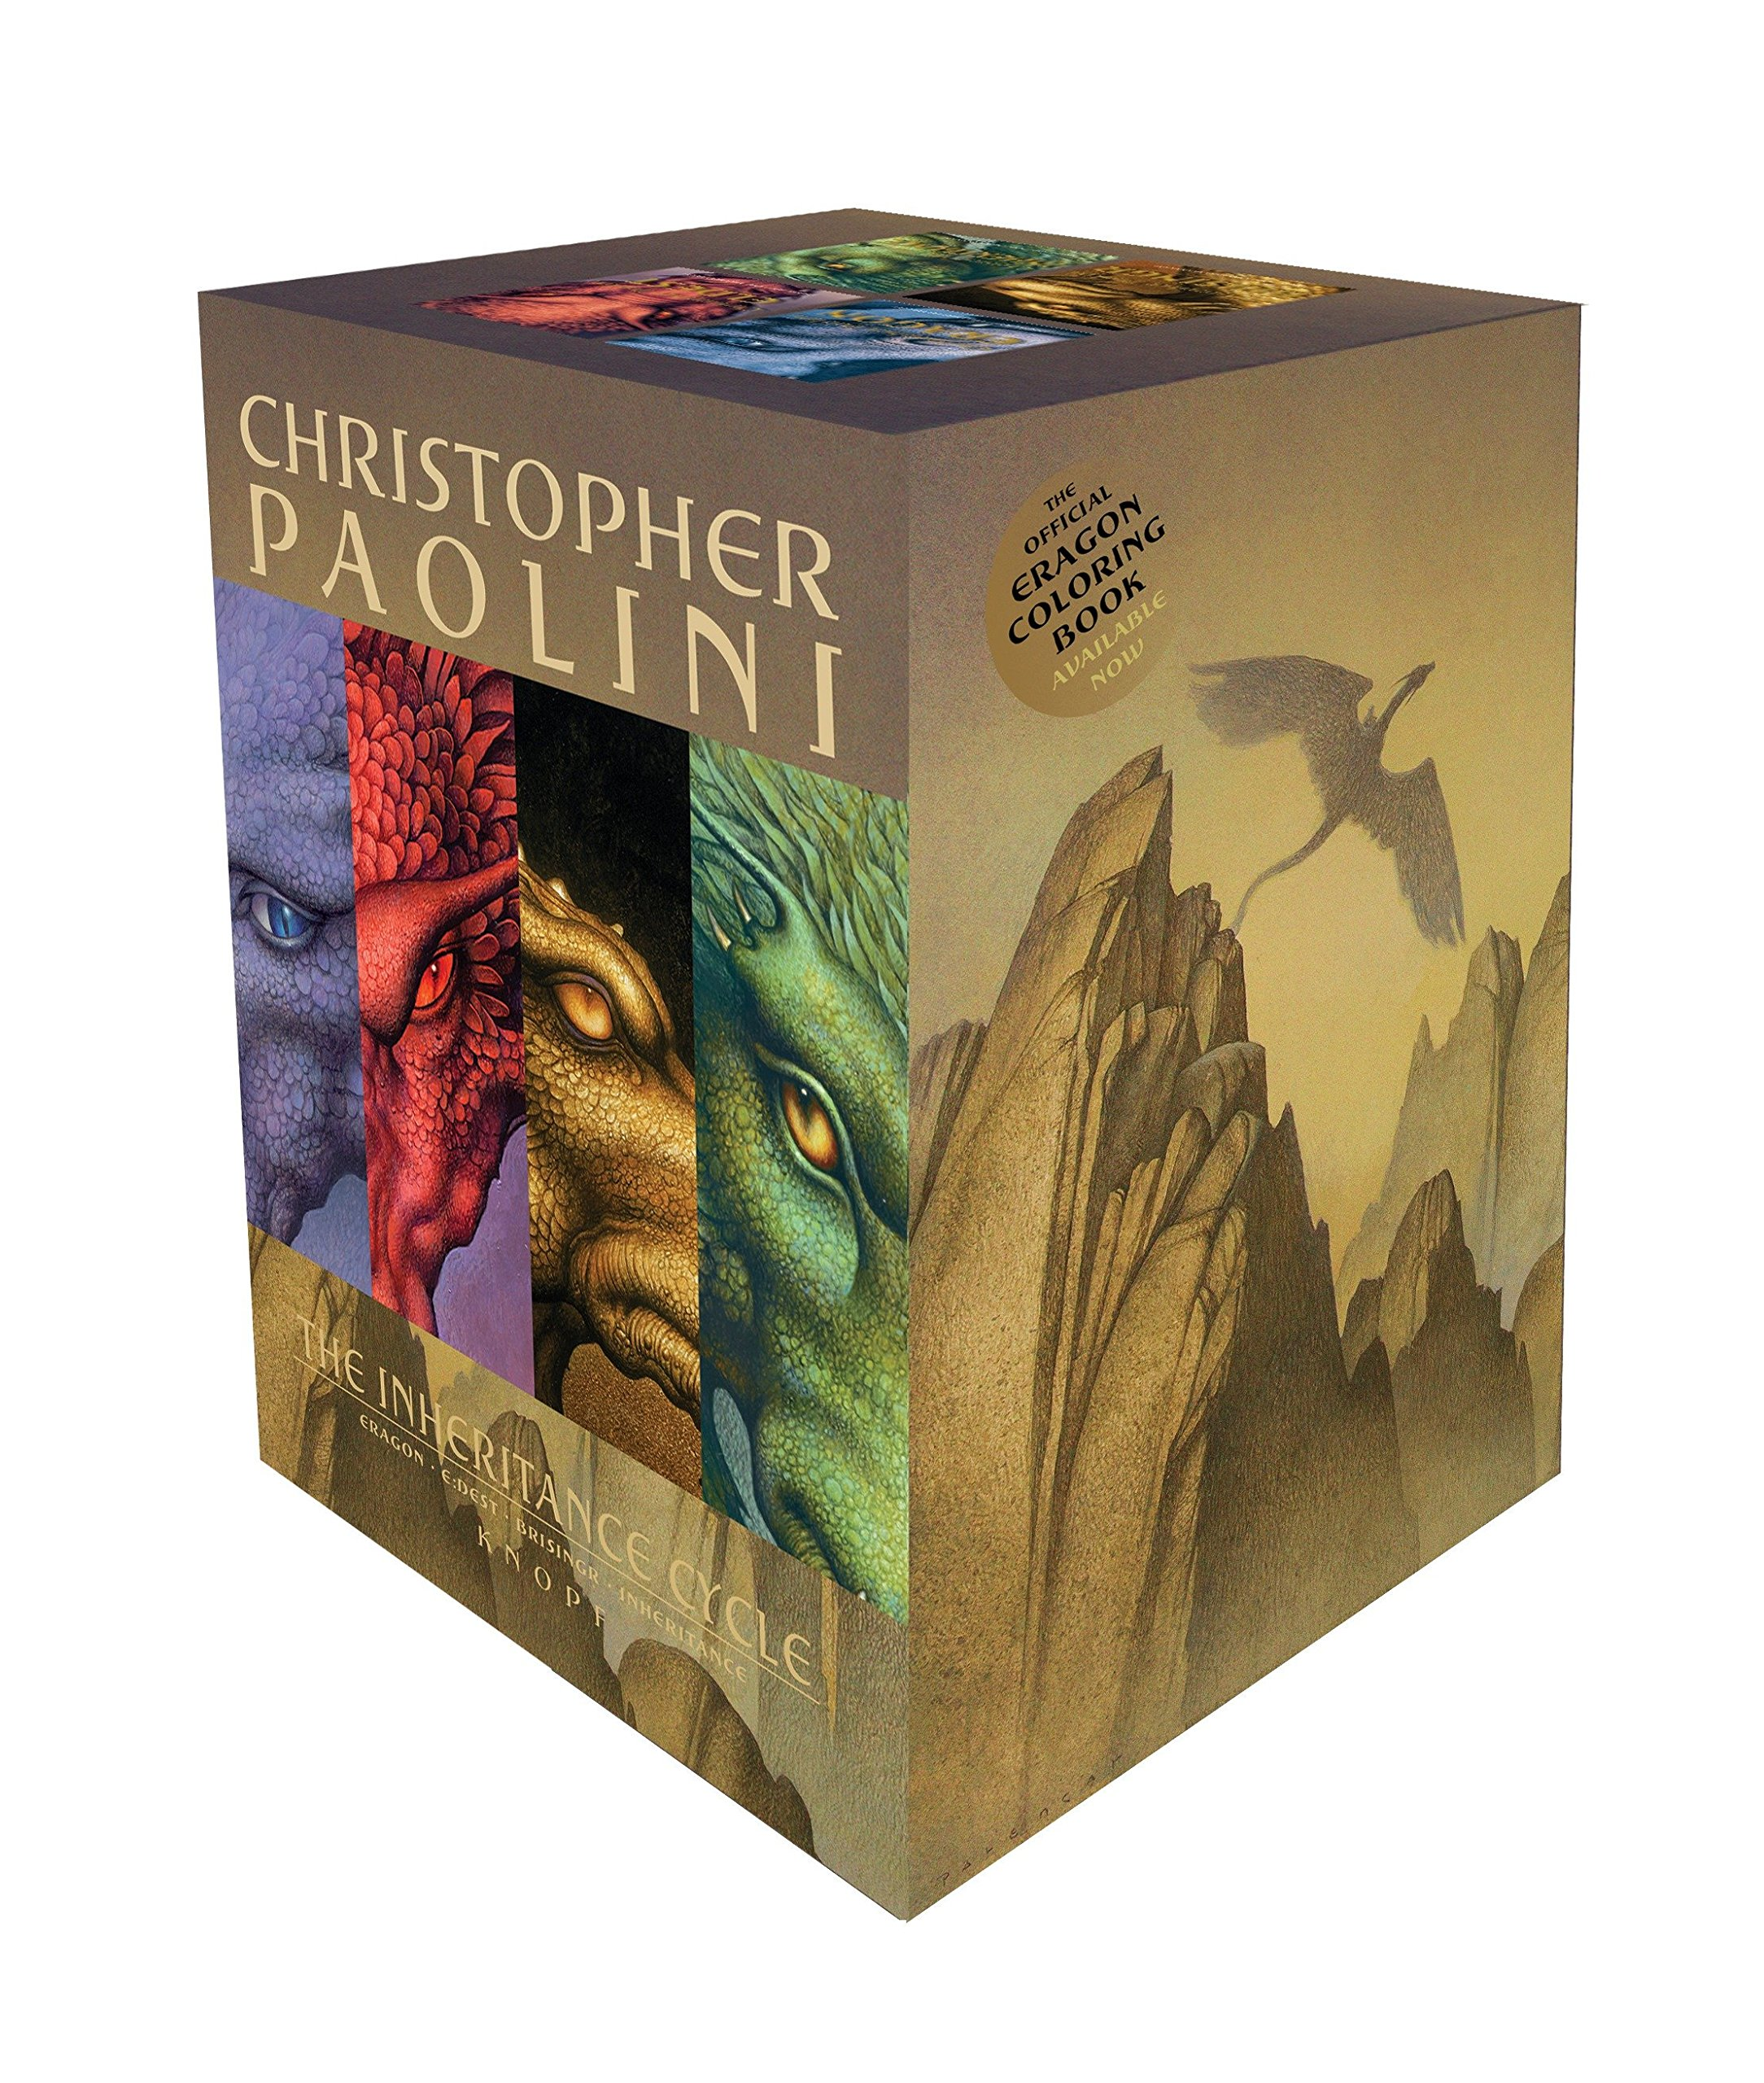 The Inheritance Cycle Series 4 Book Set Collection Eragon, Eldest, Brisngr by Christopher Paolini